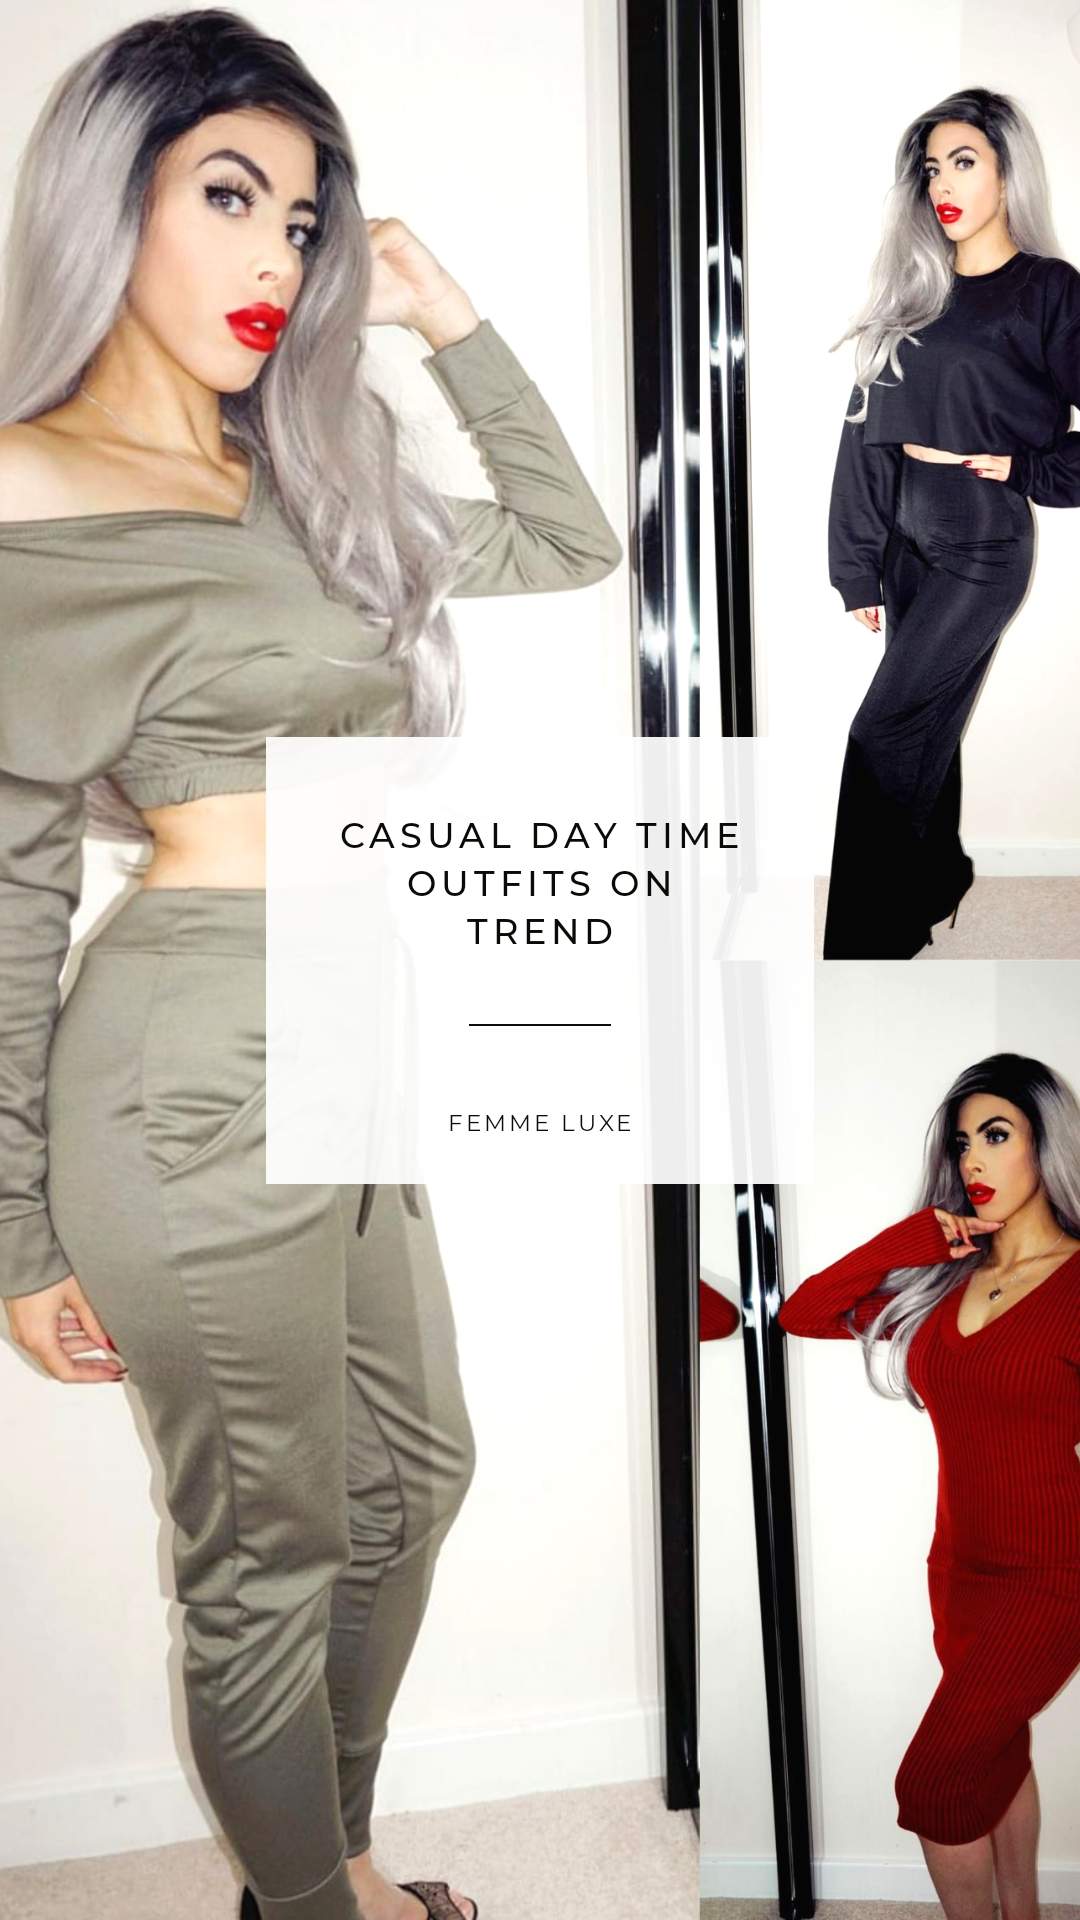 CASUAL DAY TIME OUTFITS ON TREND